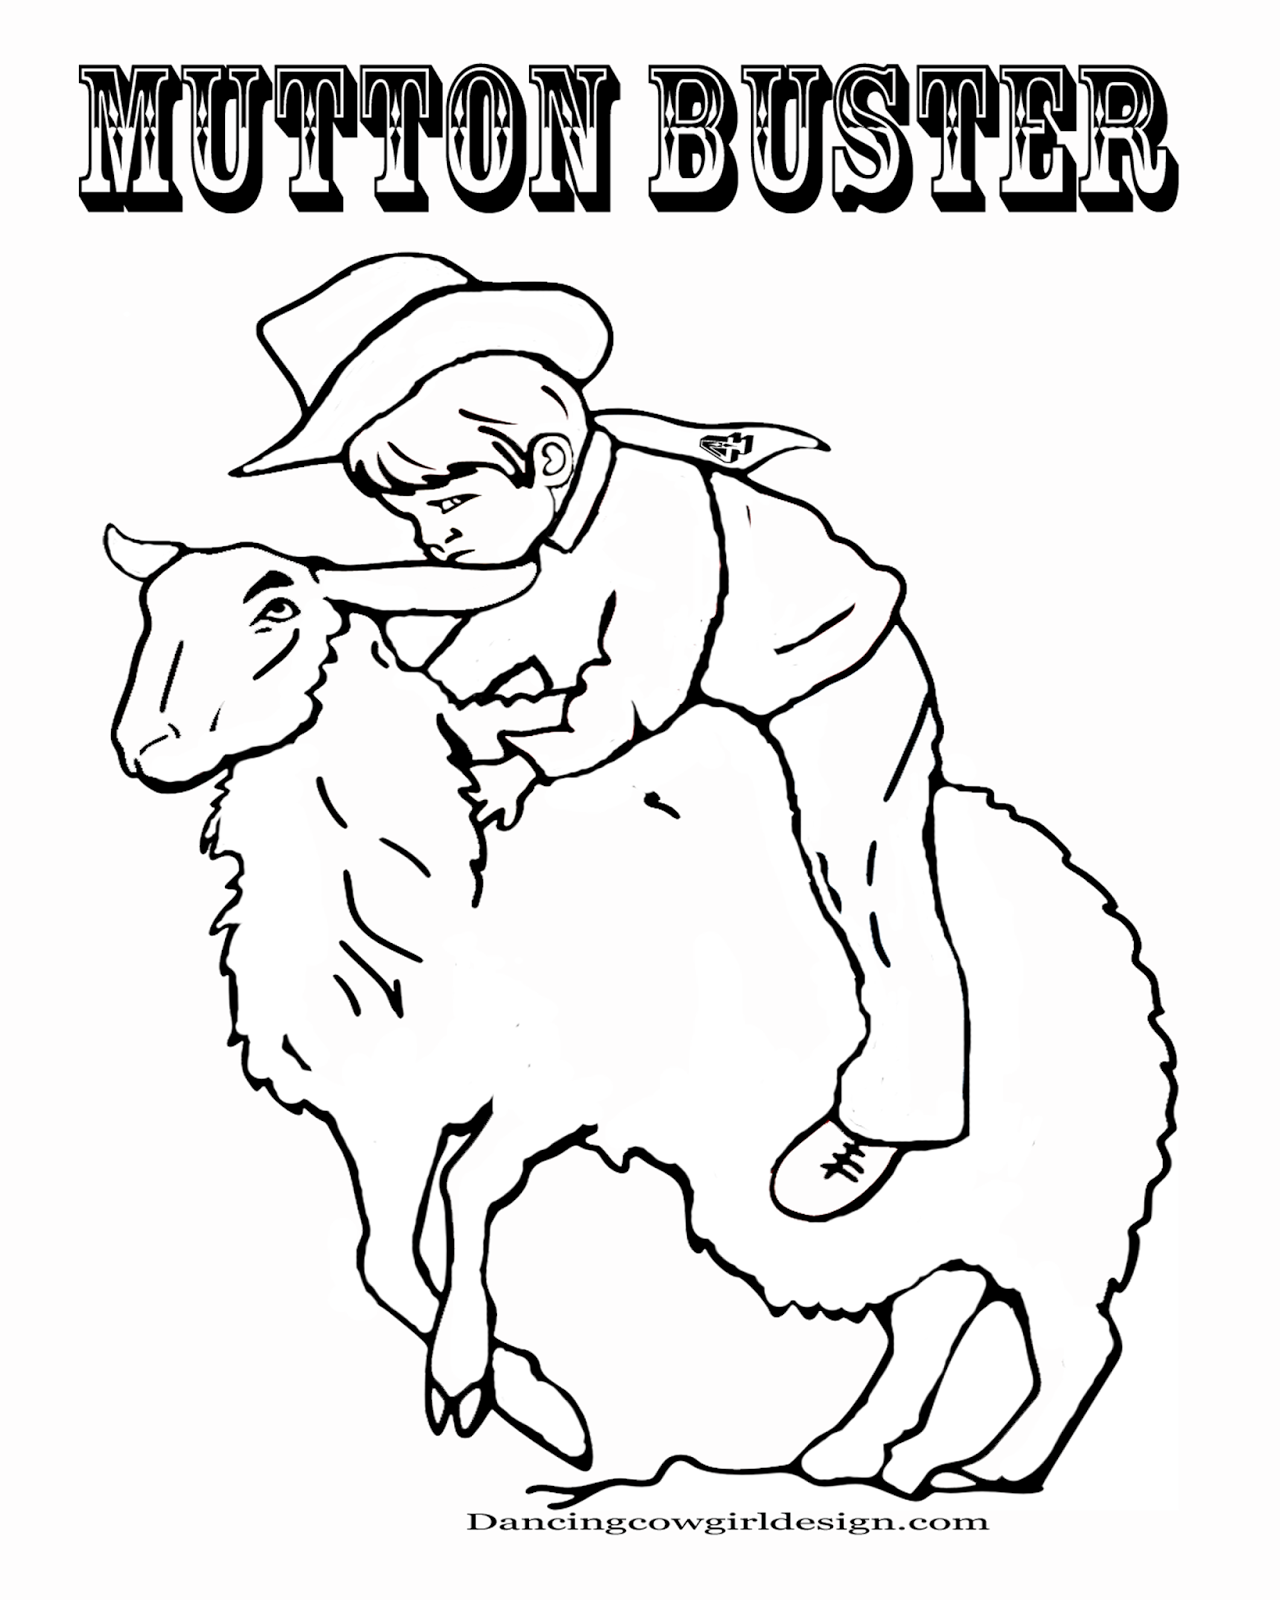 rodeo coloring pages rodeo coloring pages cowboy coloring sheet kid mutton bustin39 coloring pages rodeo